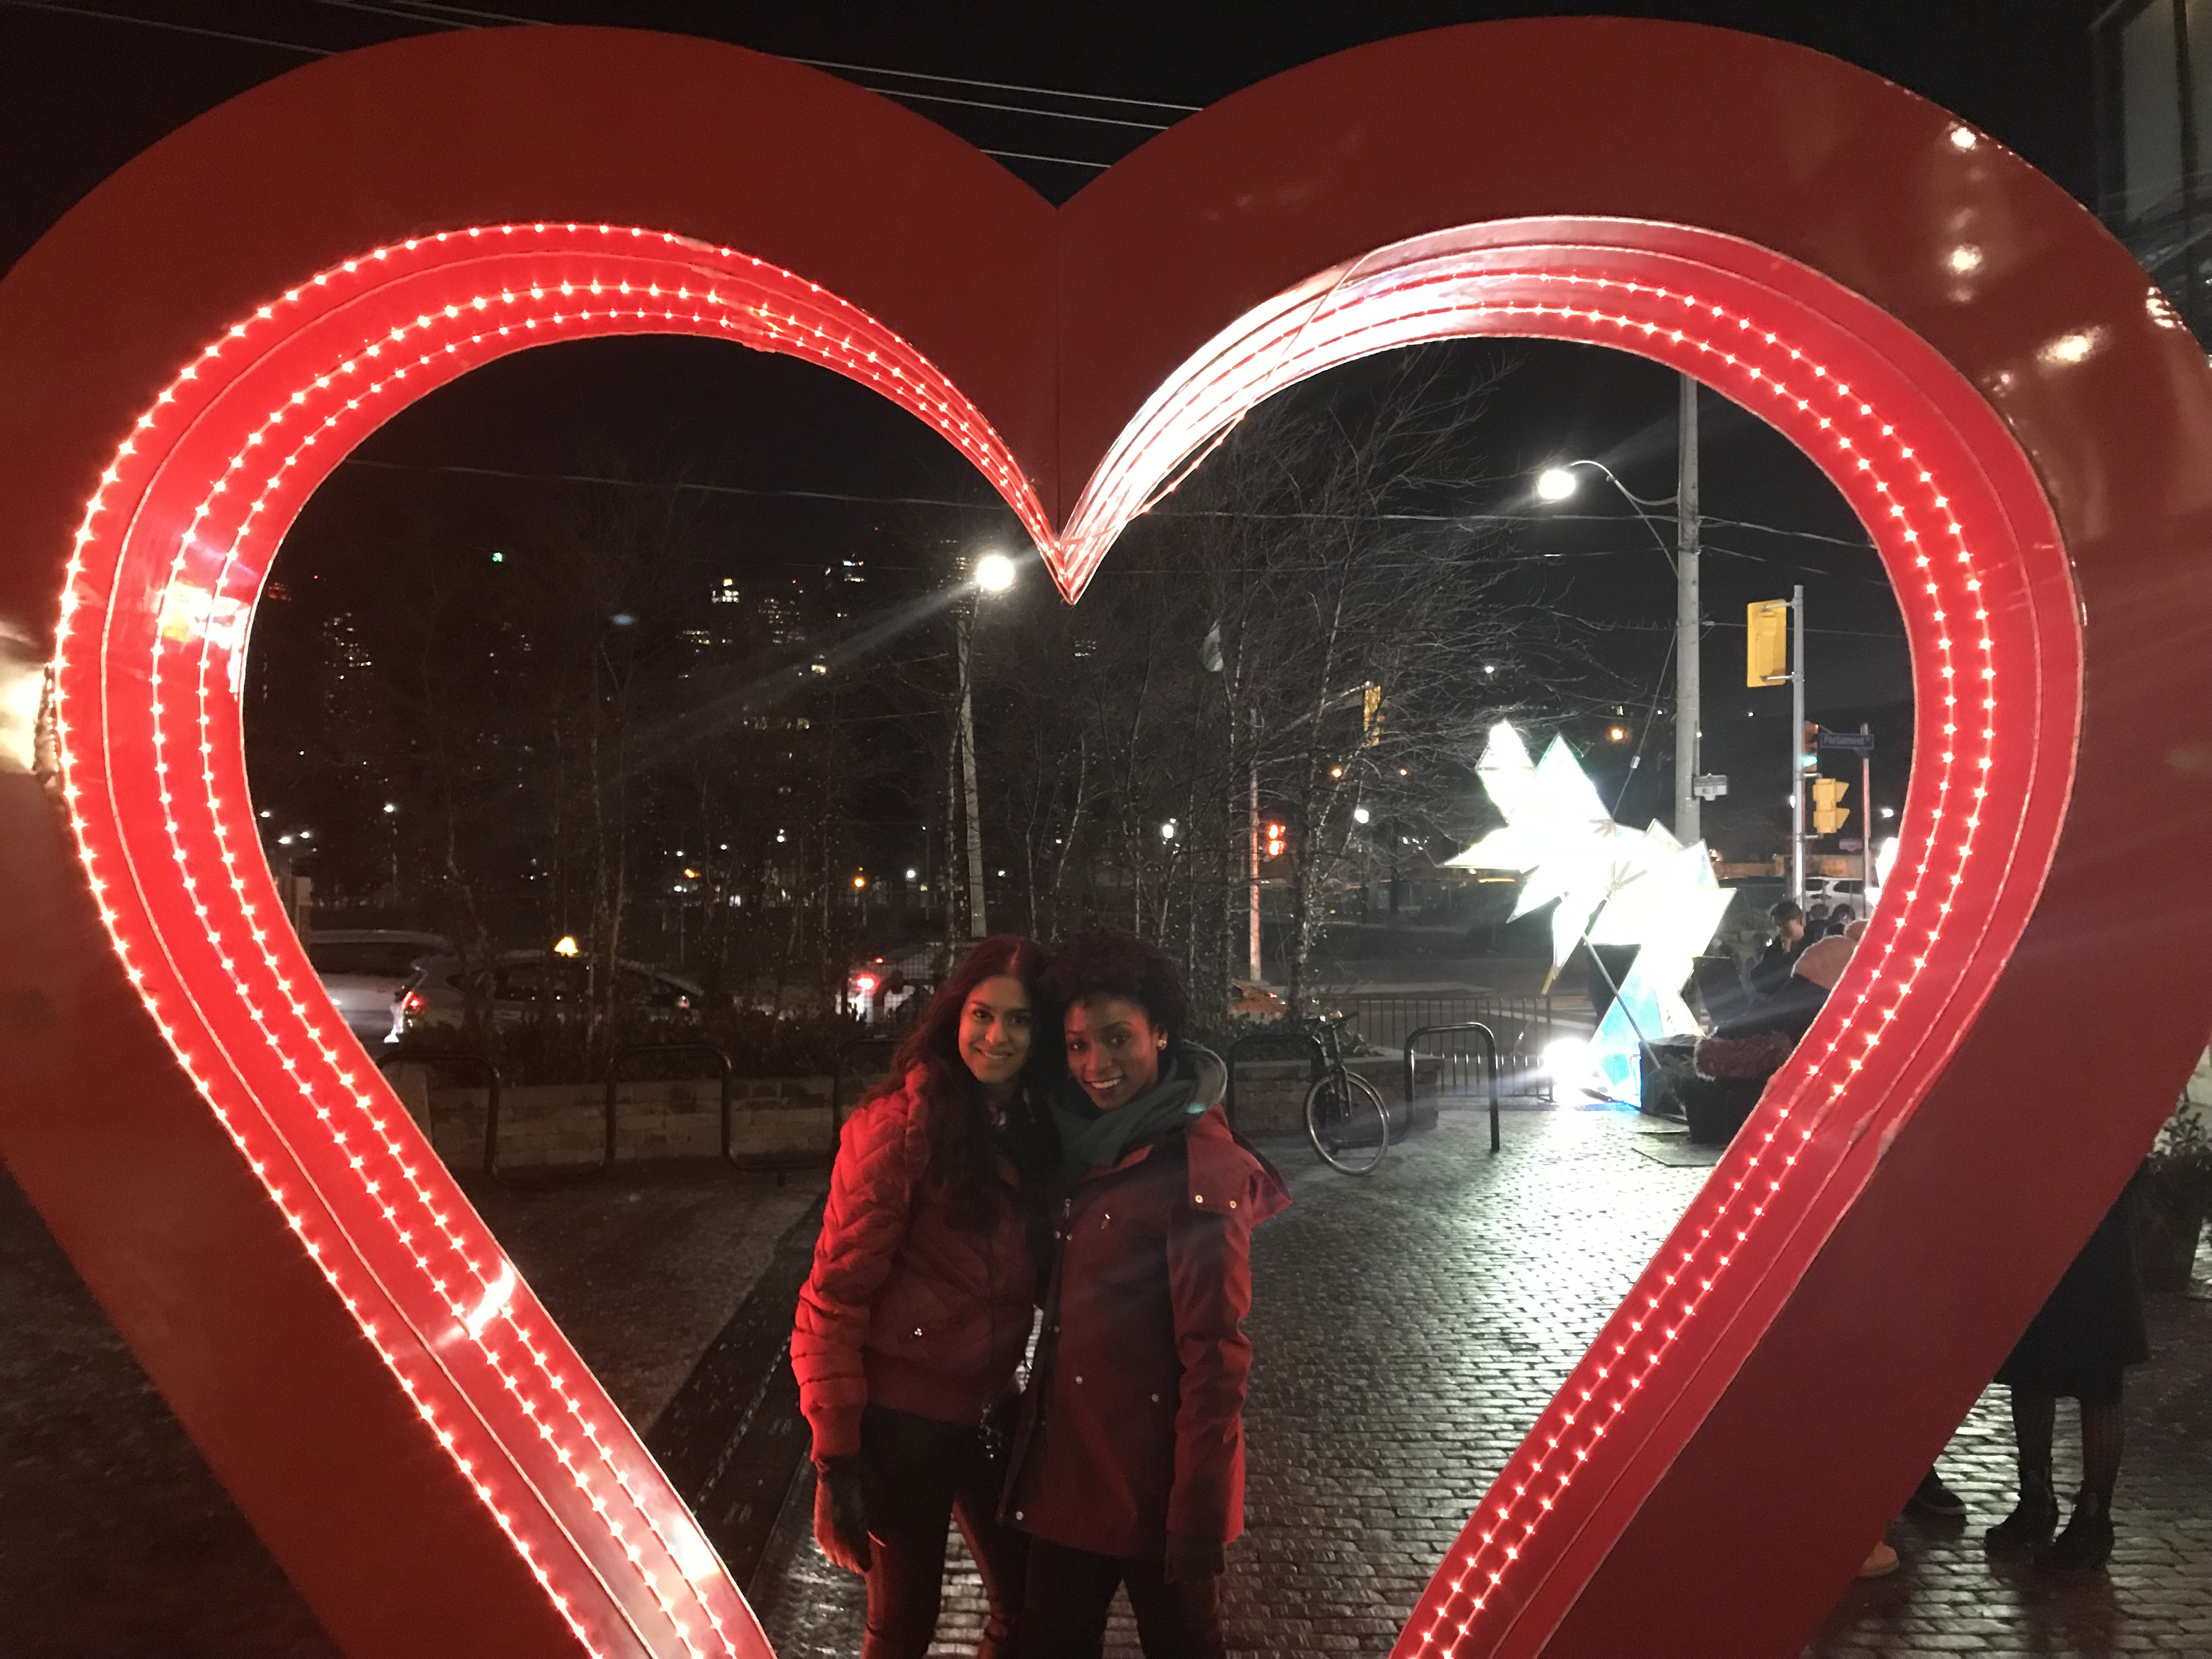 A picture of my friend and I at Toronto Lights Festival